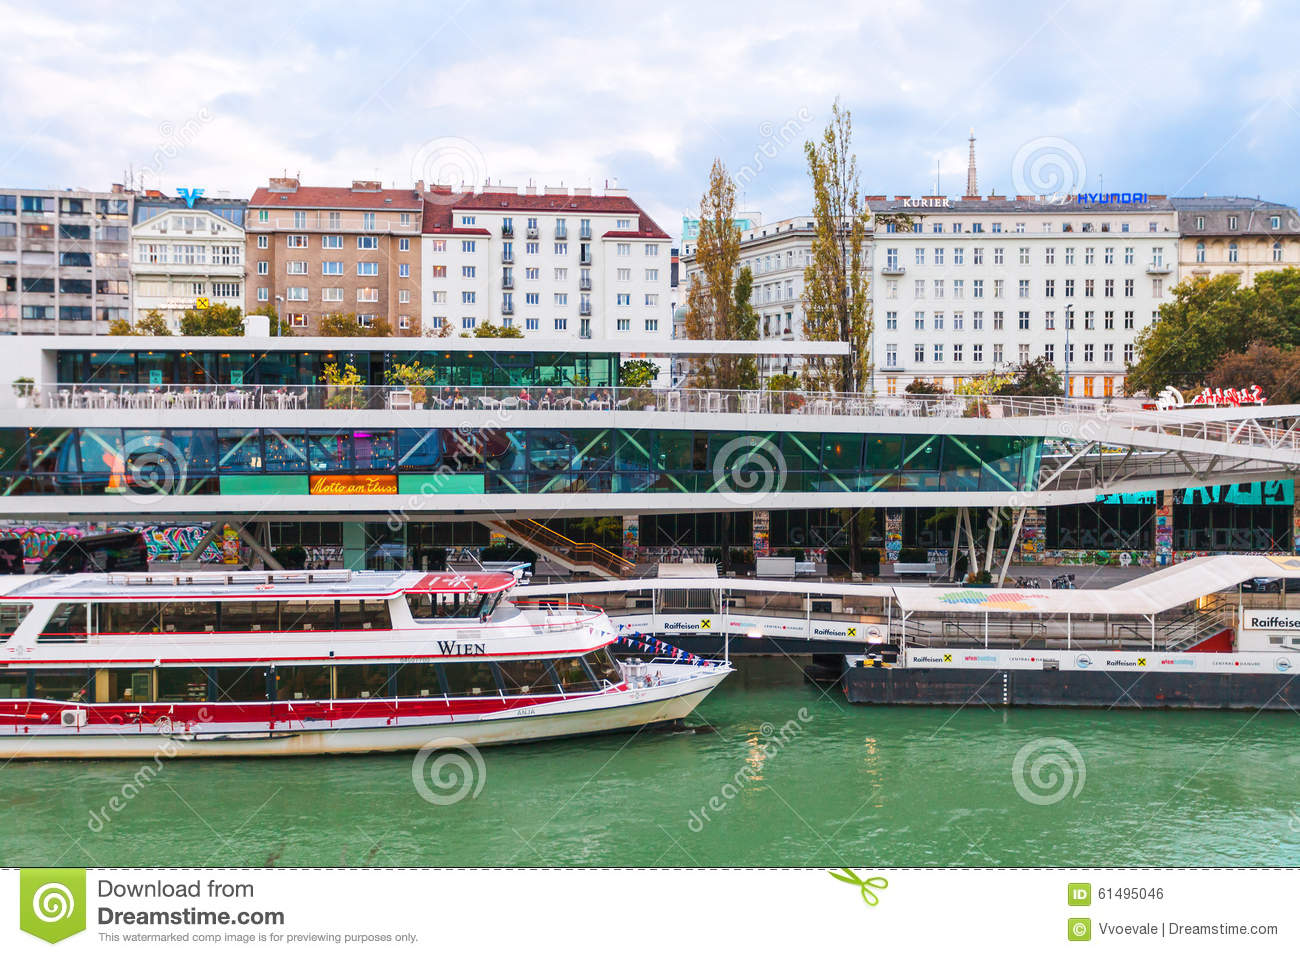 Valuable information Canal cruise danube can